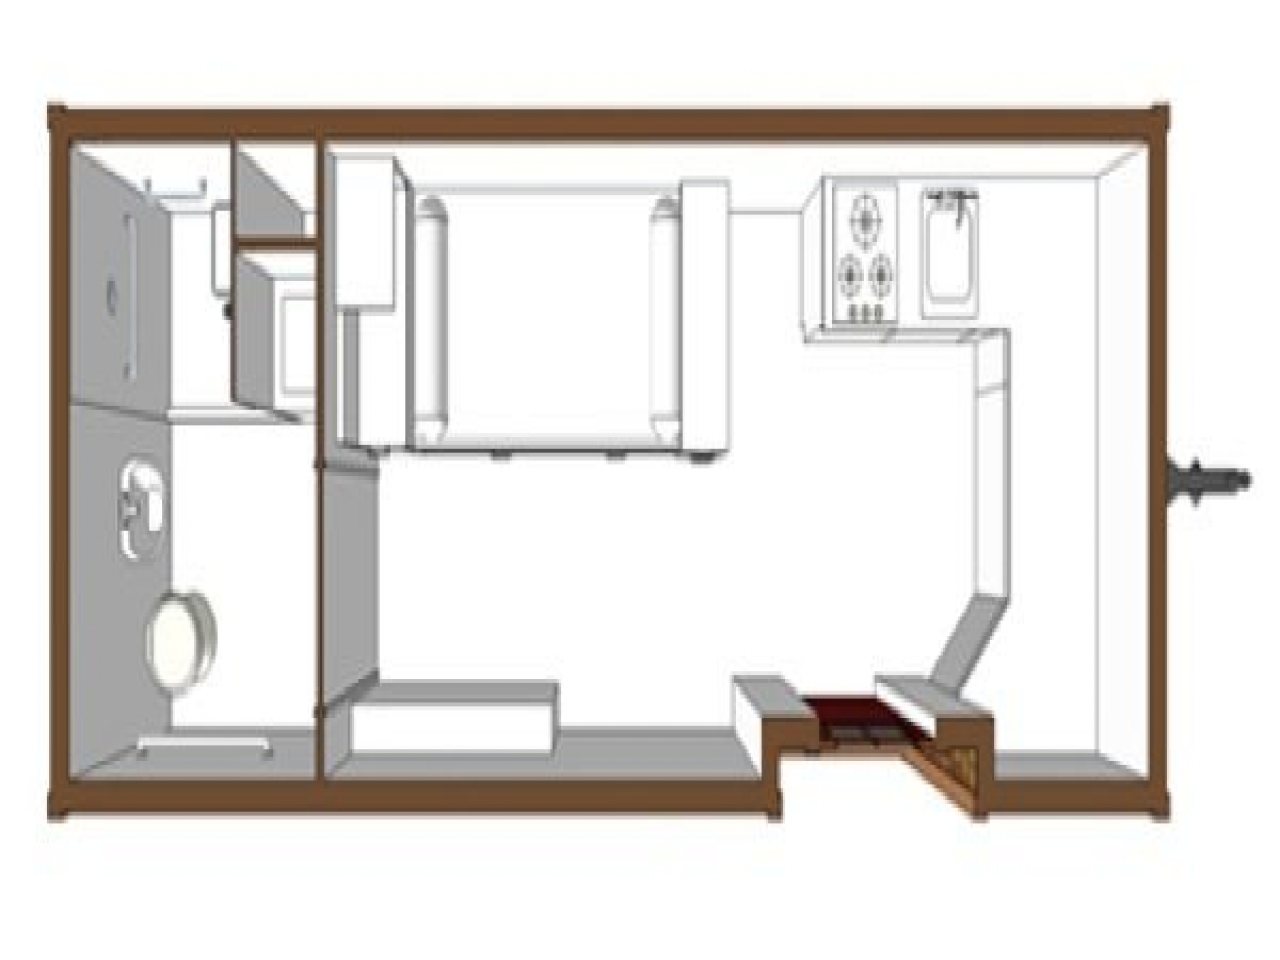 Tiny House Floor Plans By Seattle Tiny Homes Previous